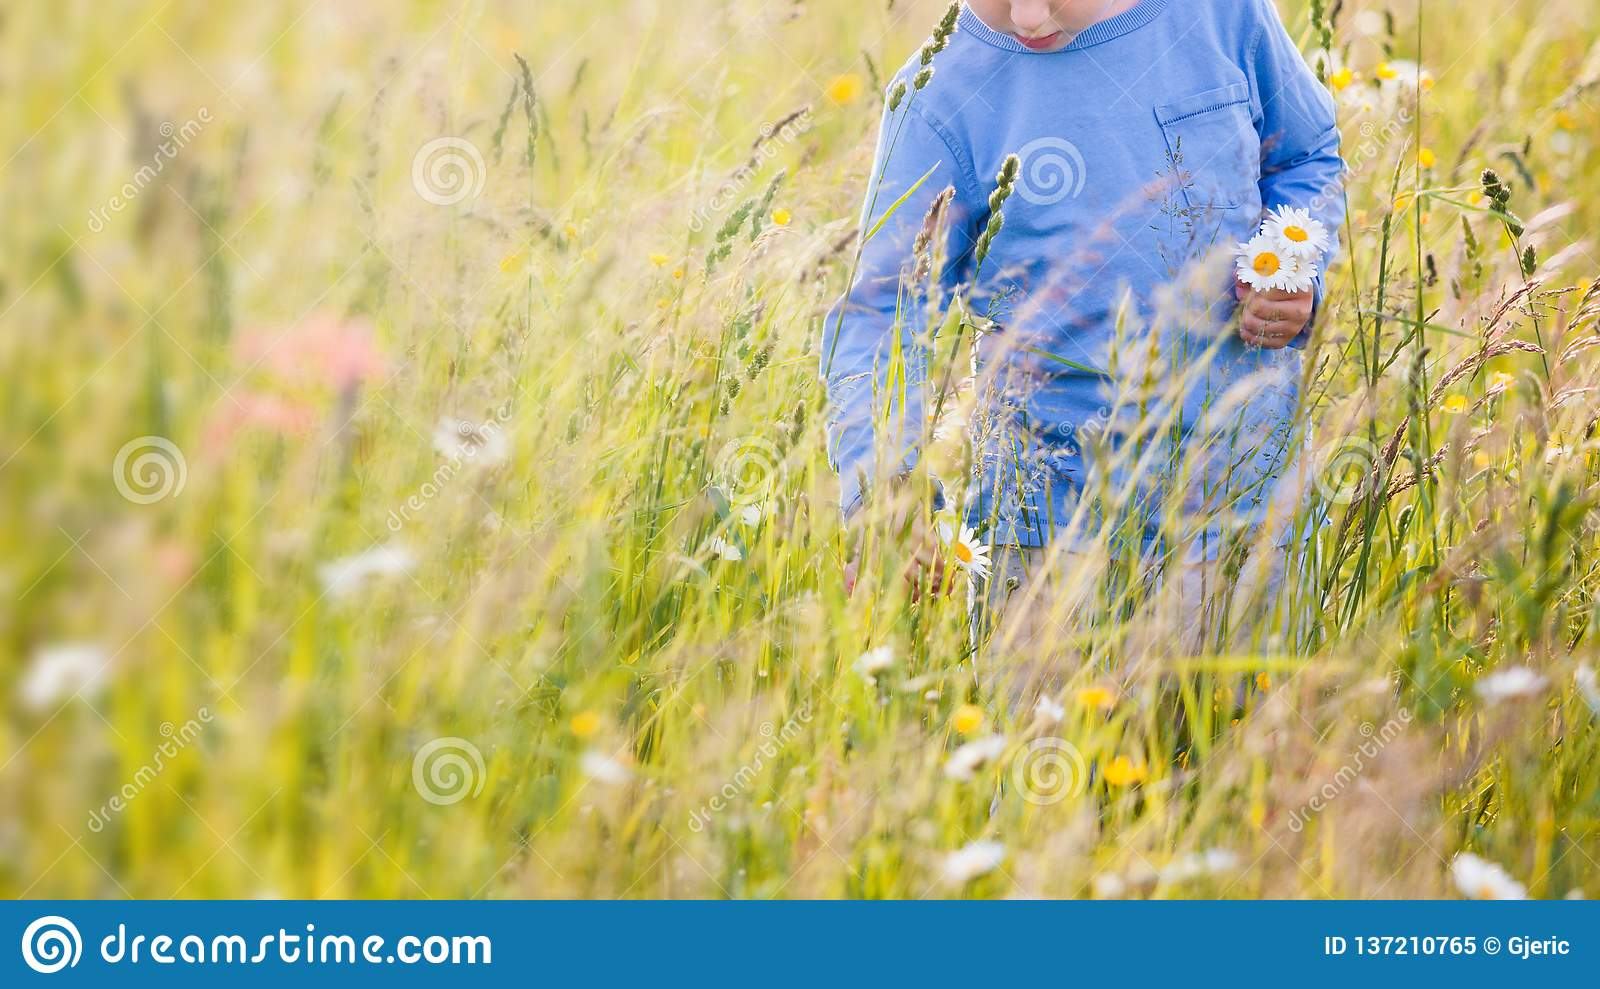 Children picking flowers on a meadow